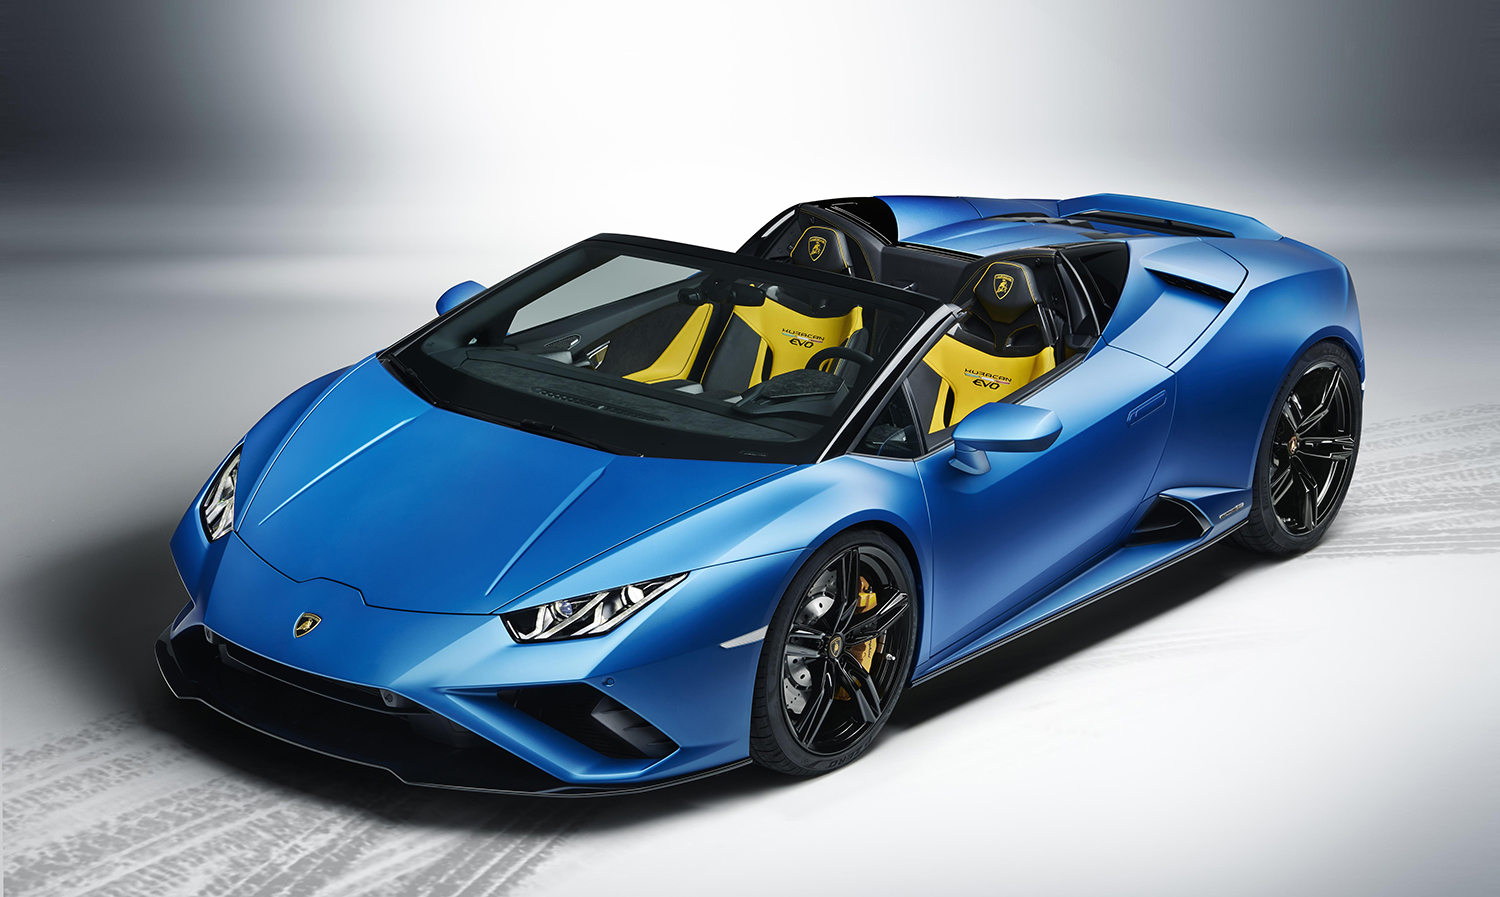 Lamborghini launches this high-speed auto in the market